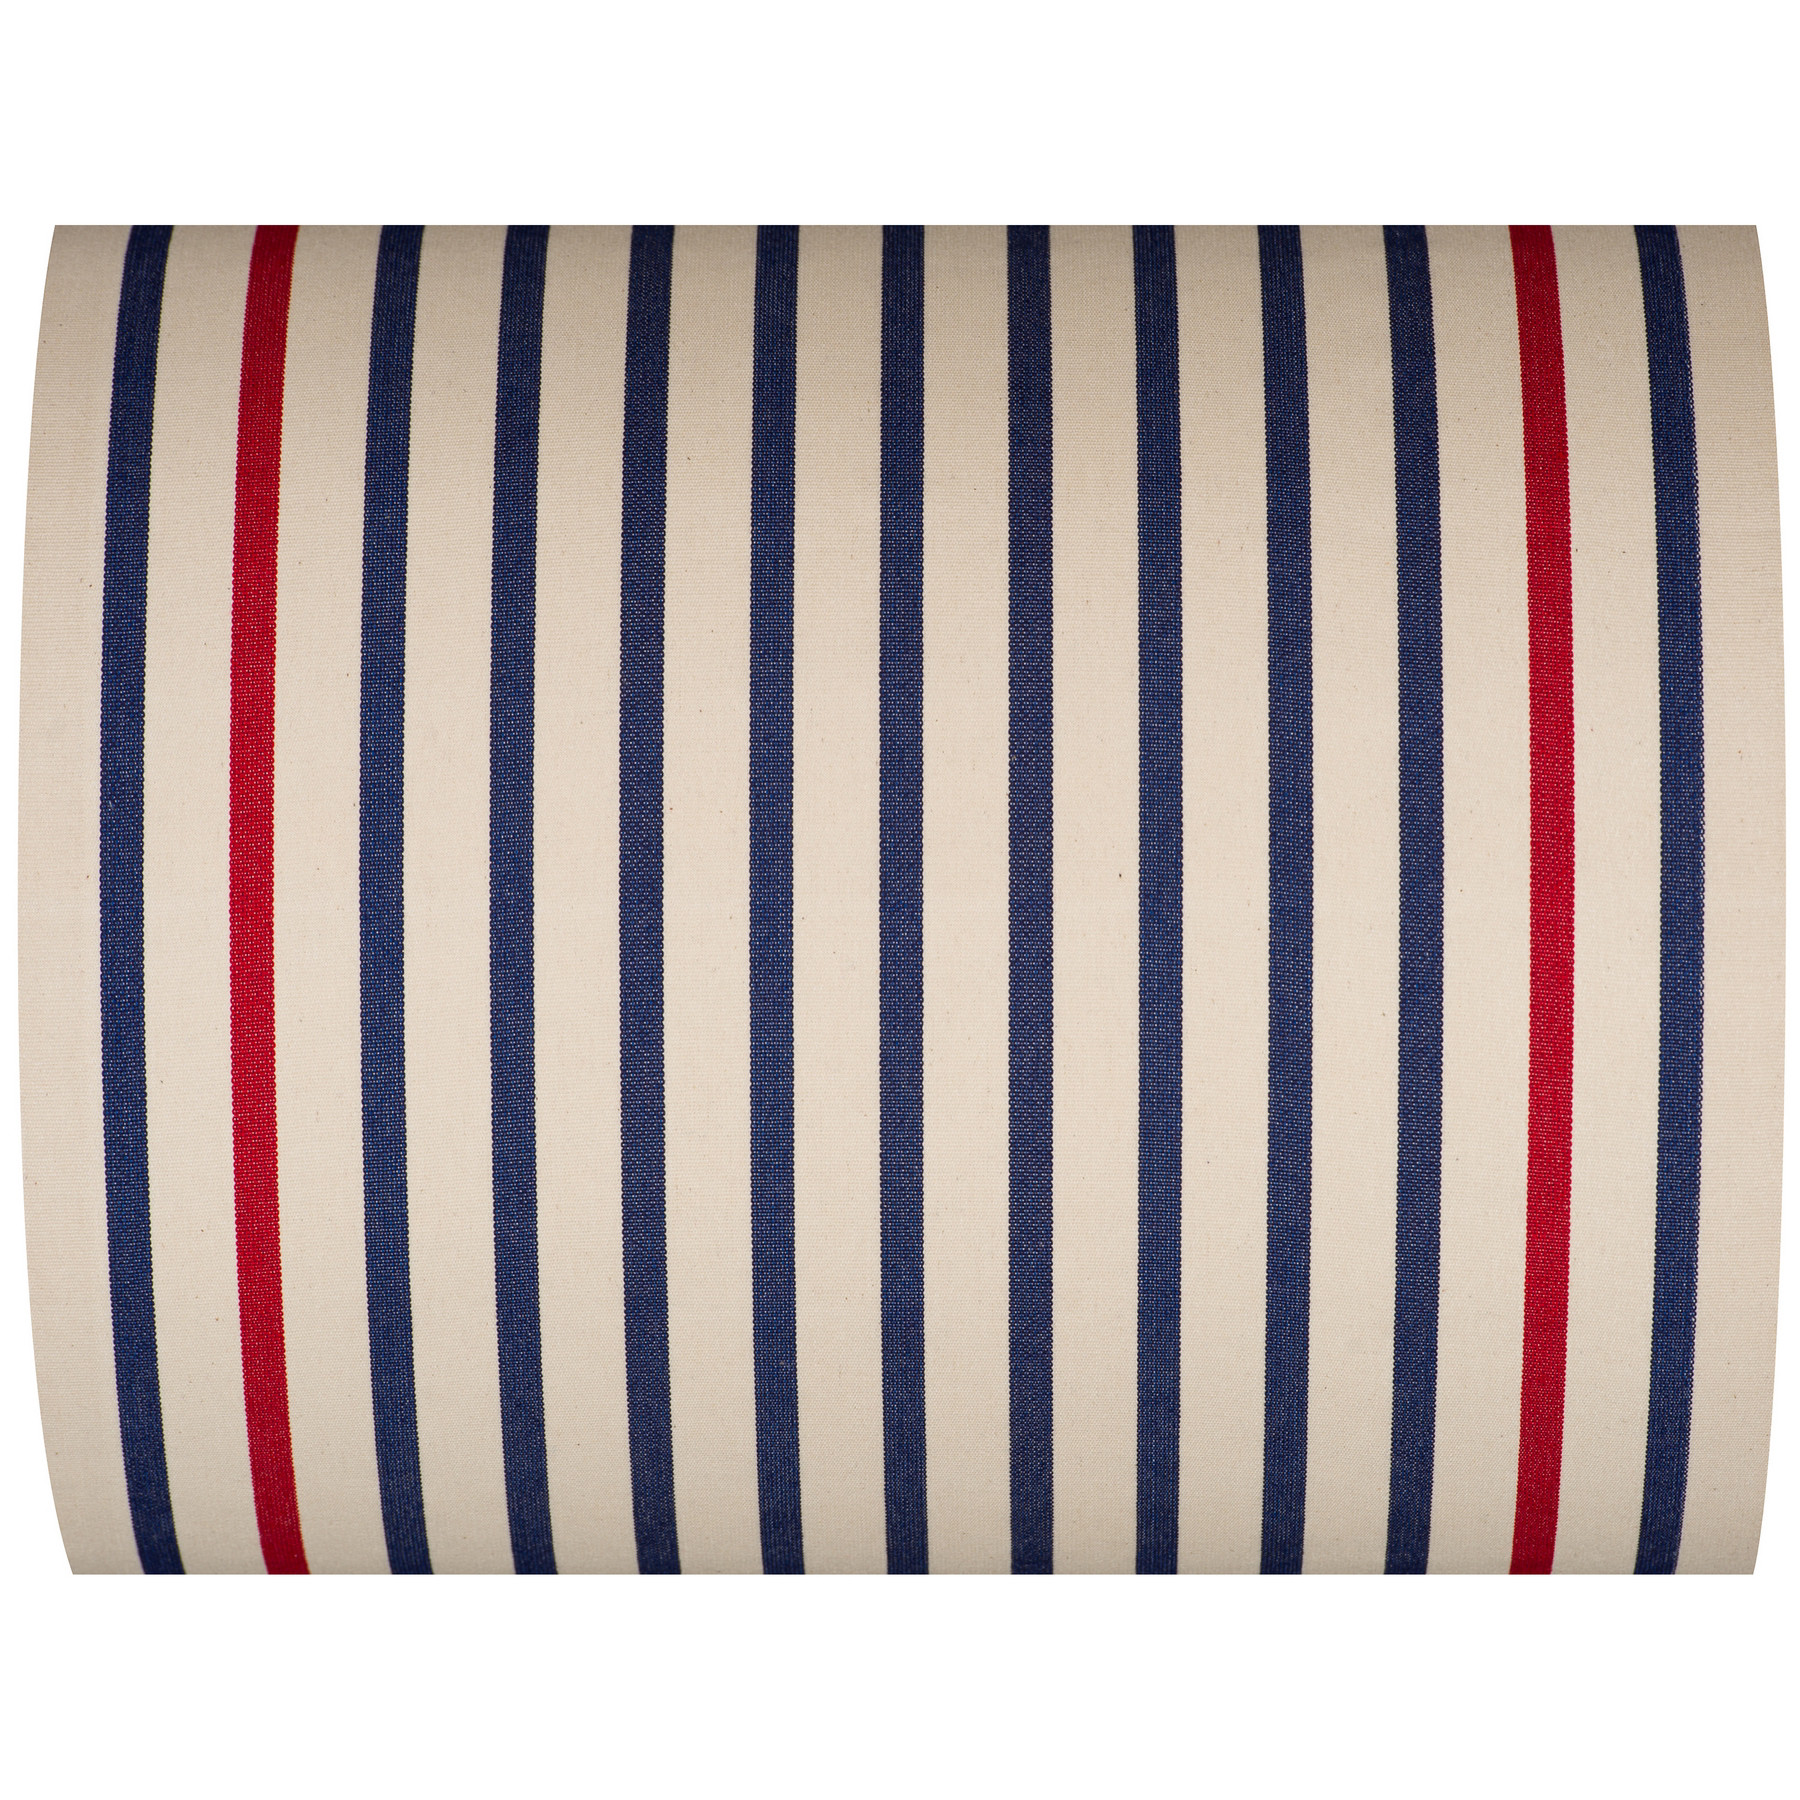 Fabric by the meter MARIN 43cm